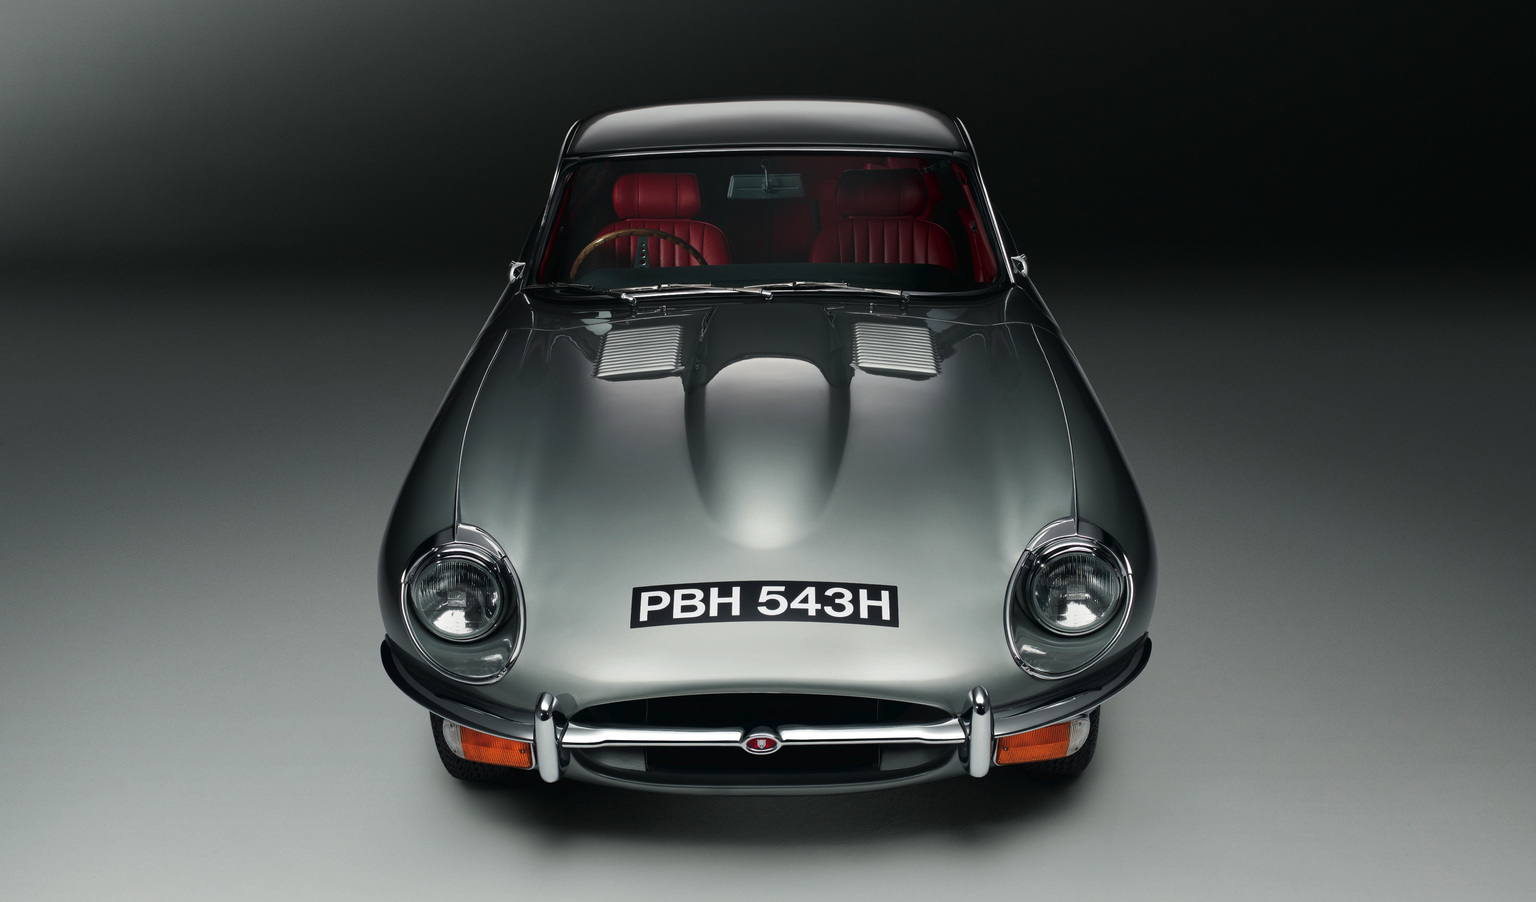 1969 jaguar e type series ii coupe supercars sources further reading freerunsca Choice Image